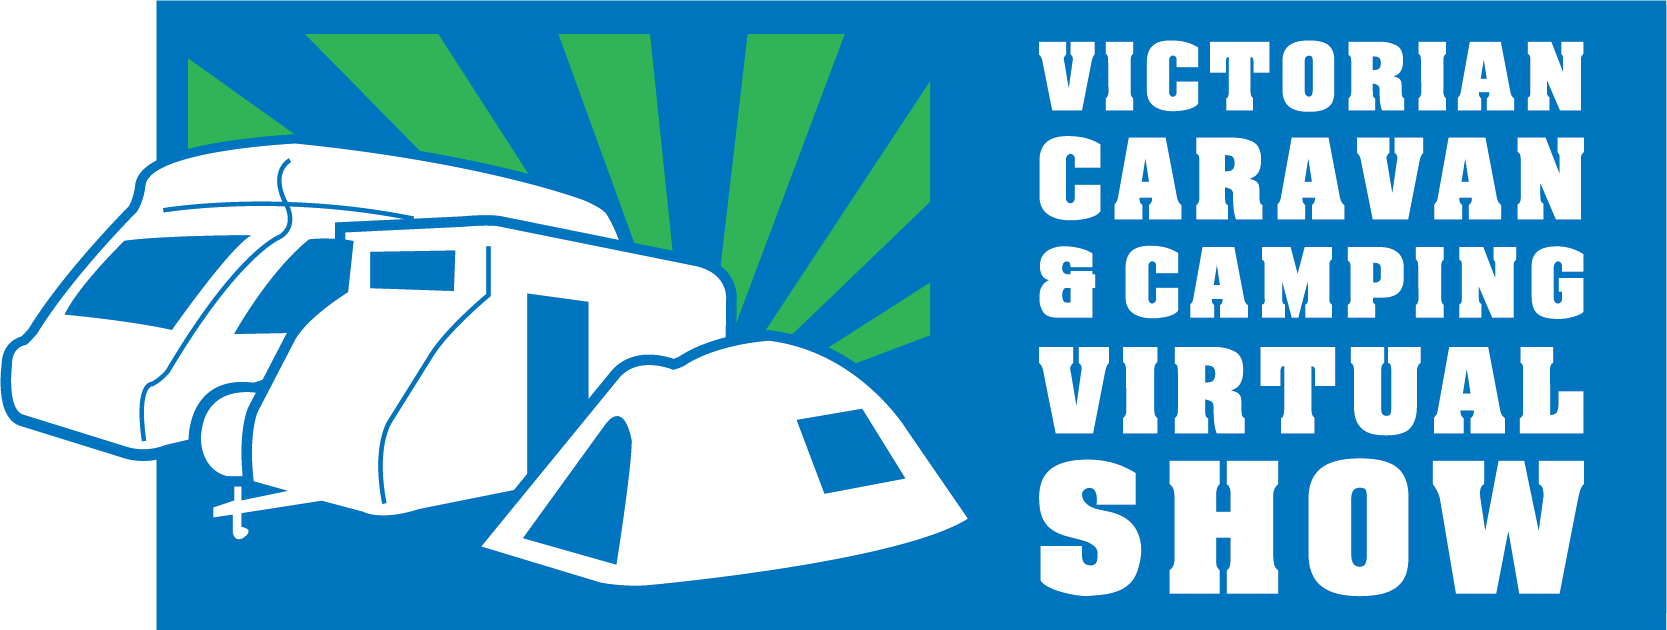 The 2020 Victorian Caravan & Camping Virtual Show announced